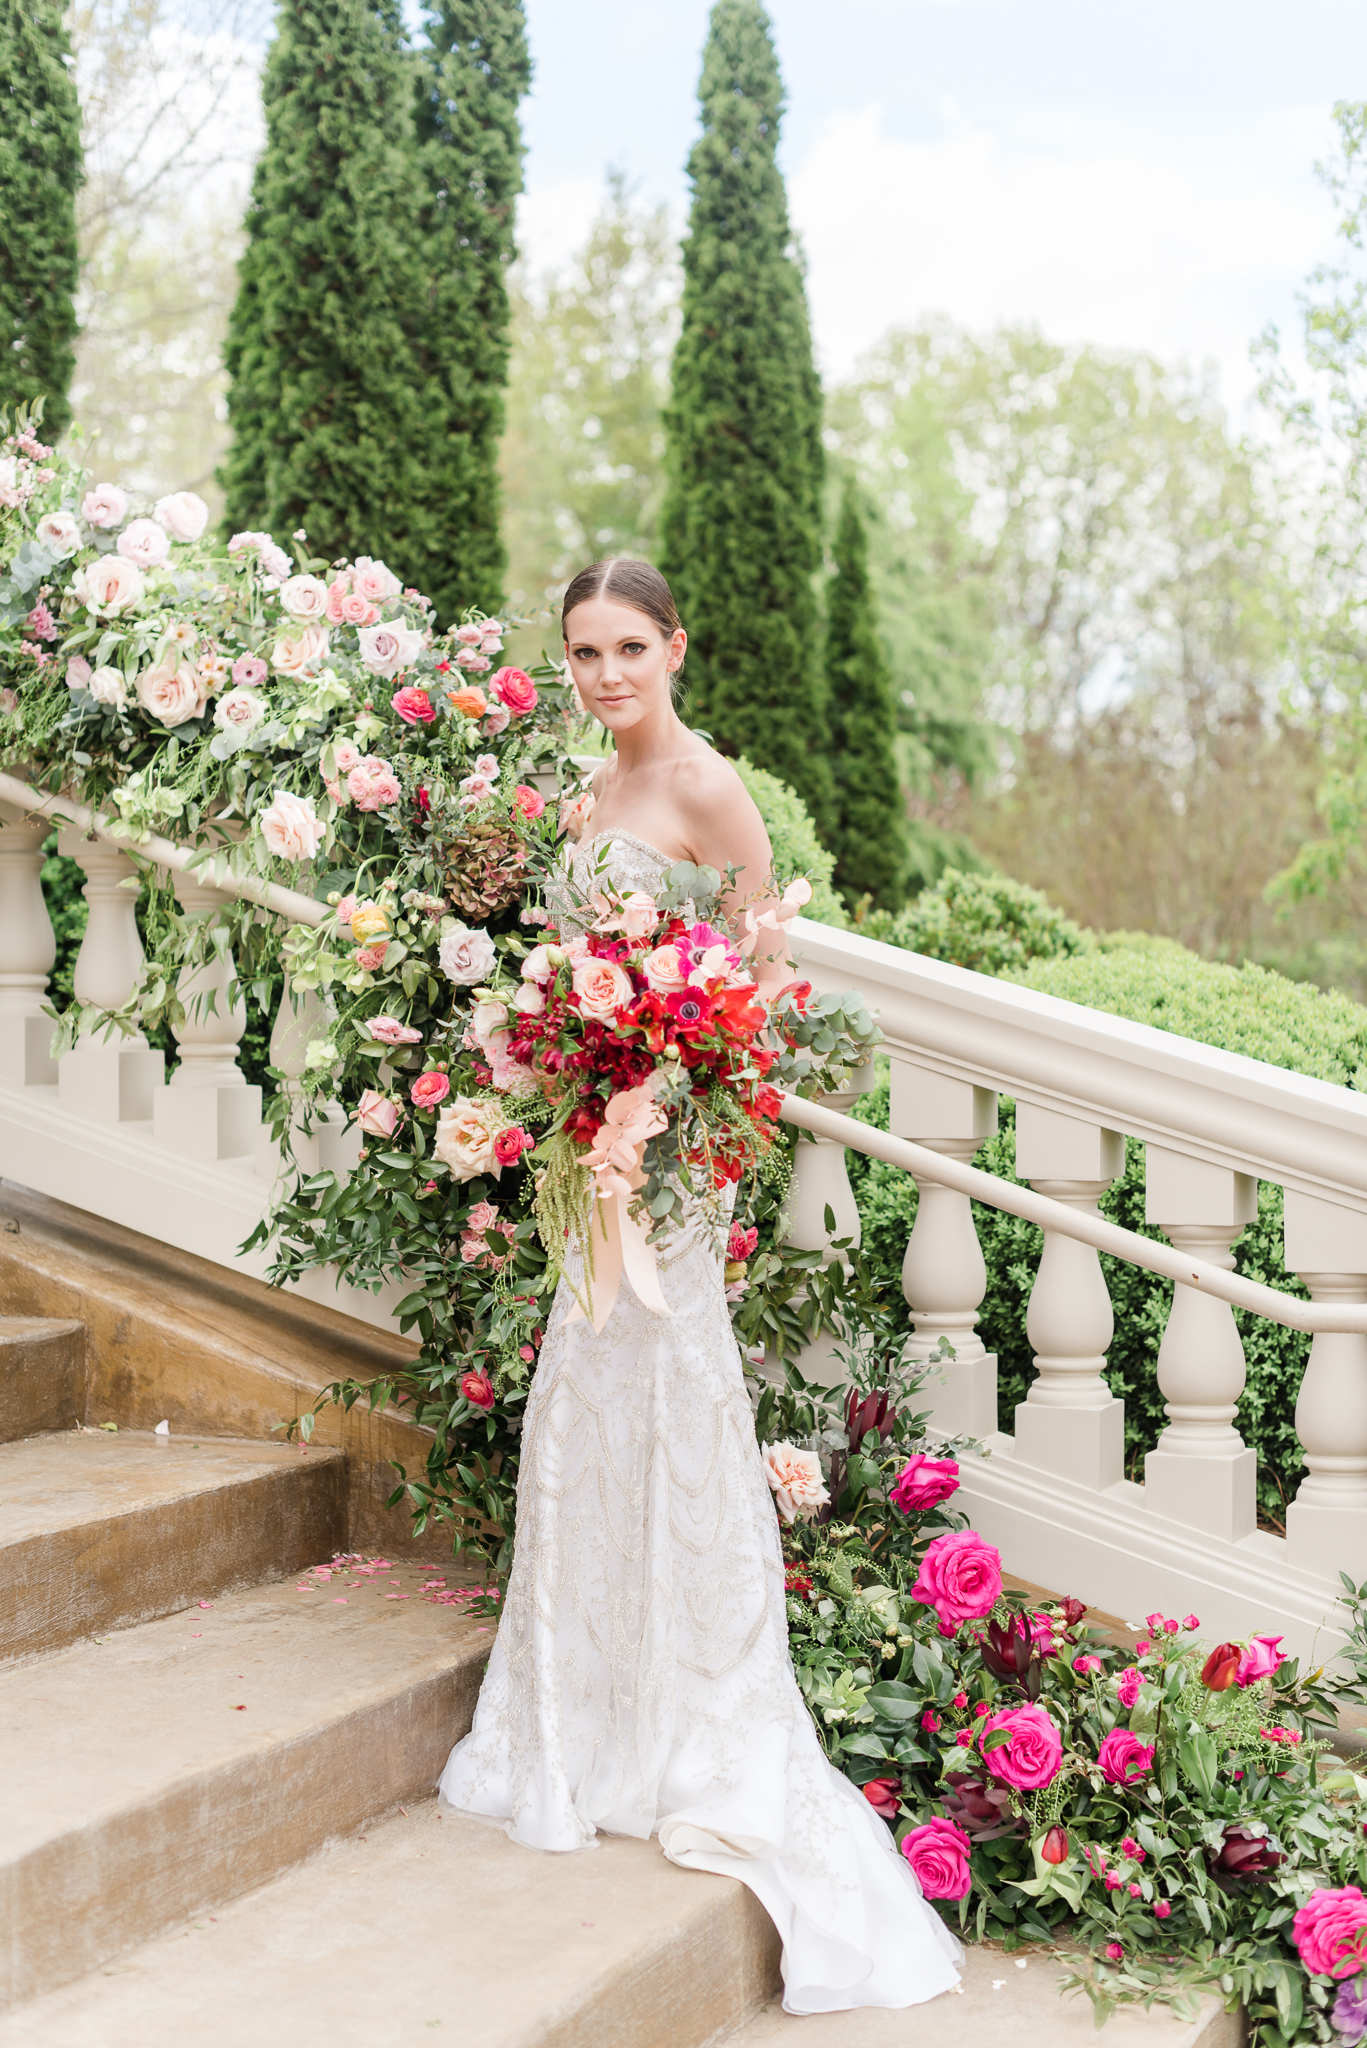 Wedding Day Bridal Portraits with flowers-11.jpg